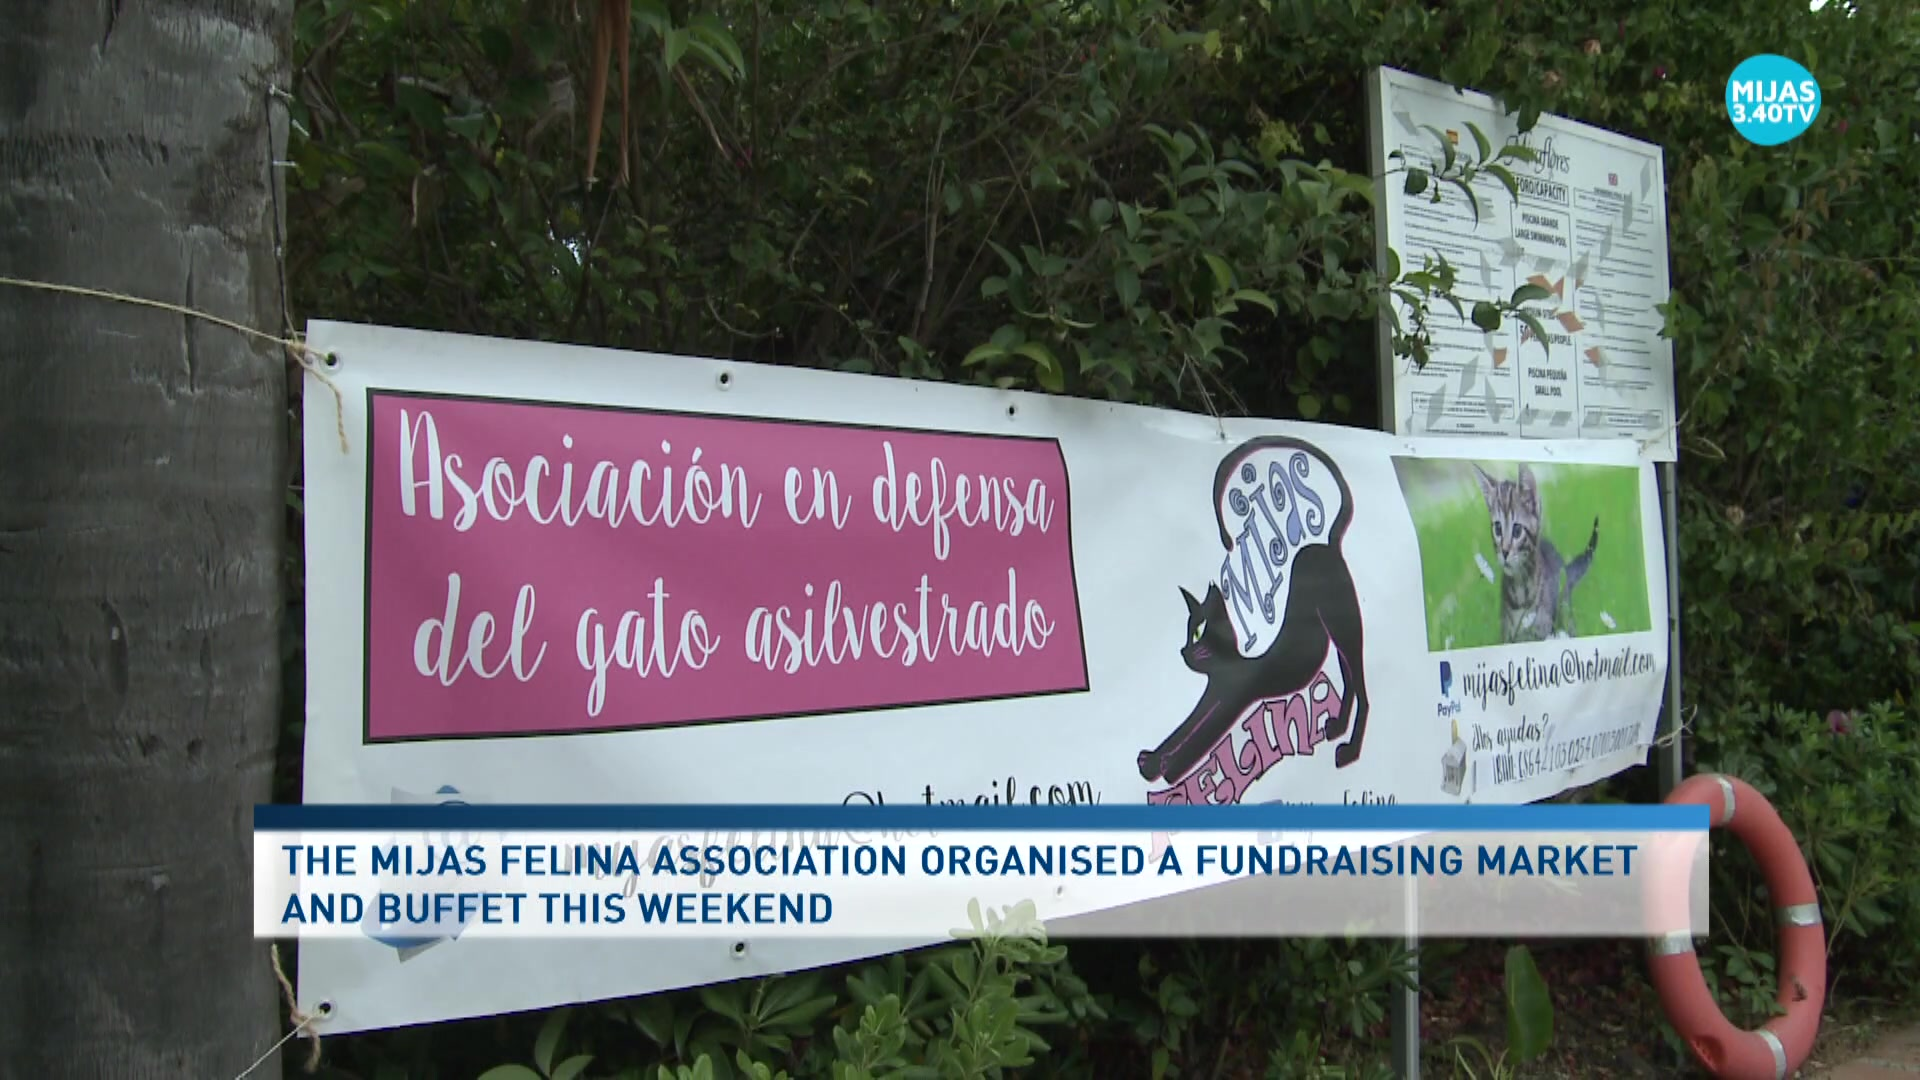 Mijas Felina organised a new charity event to raise funds last weekend